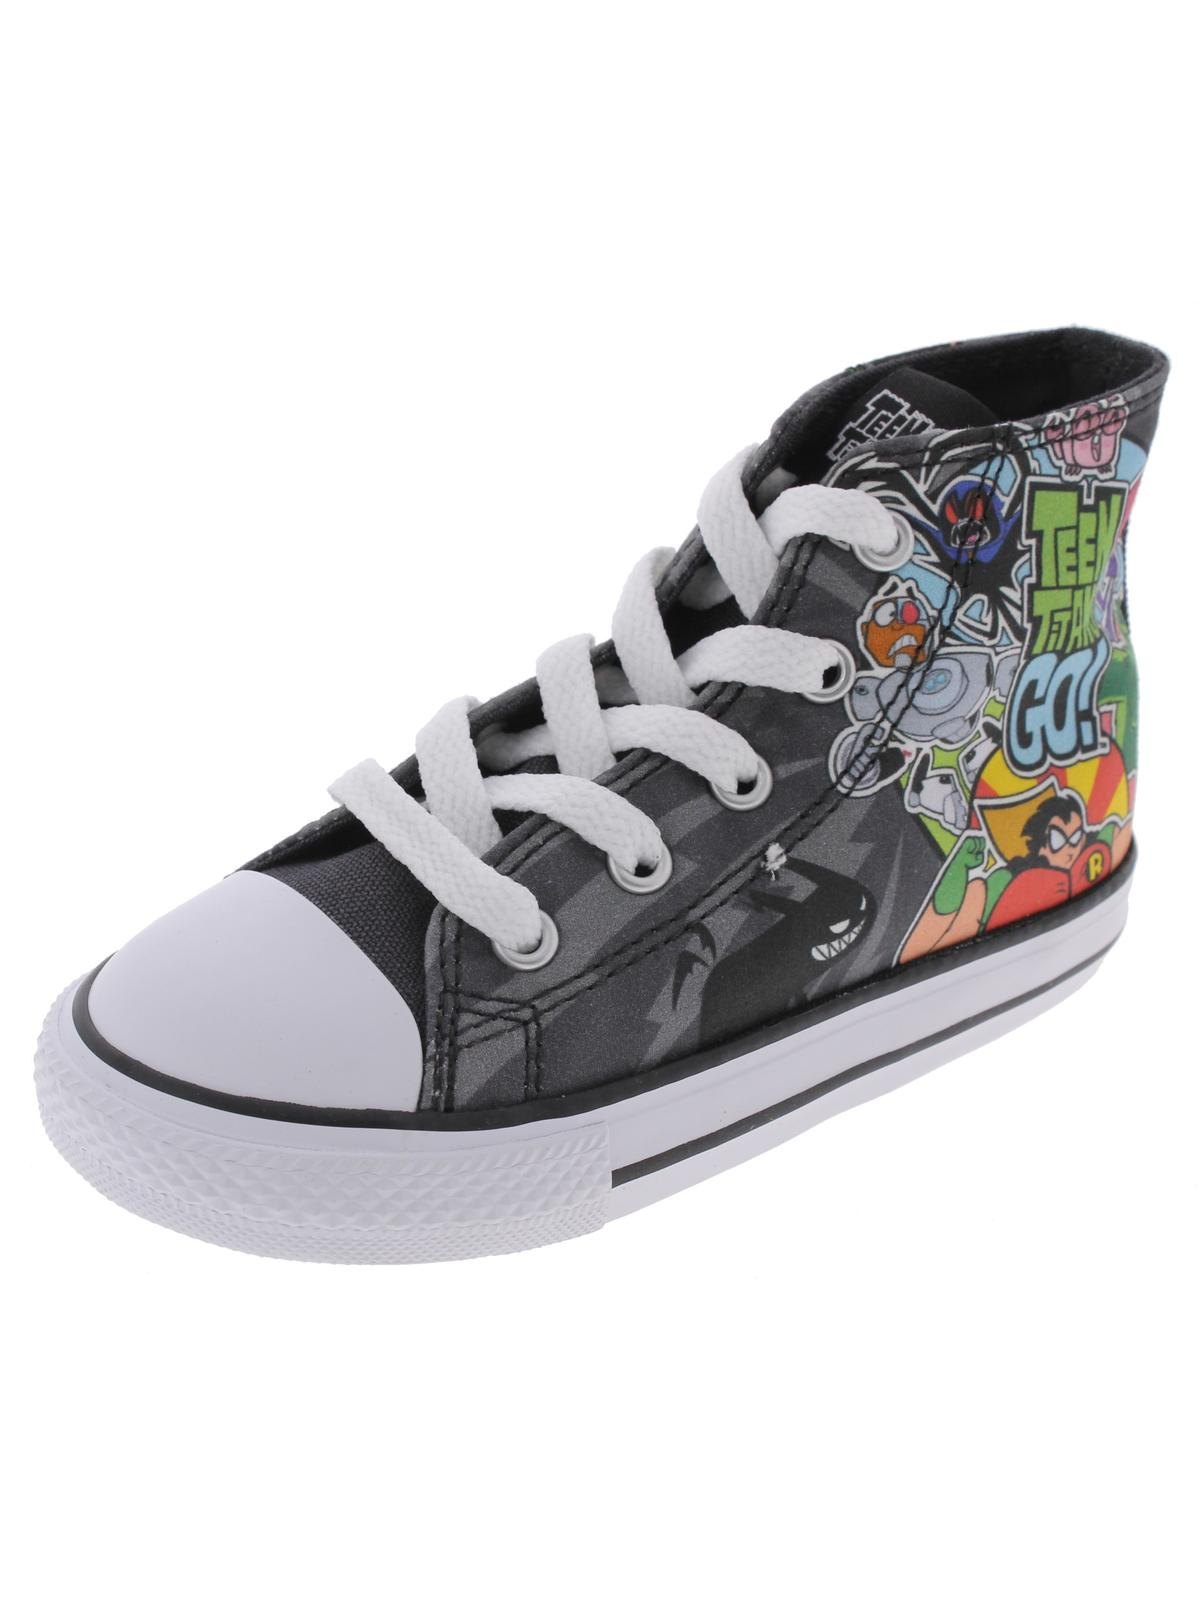 Converse Boys Teen Titans Go High Top Skateboard Casual Shoes by Converse